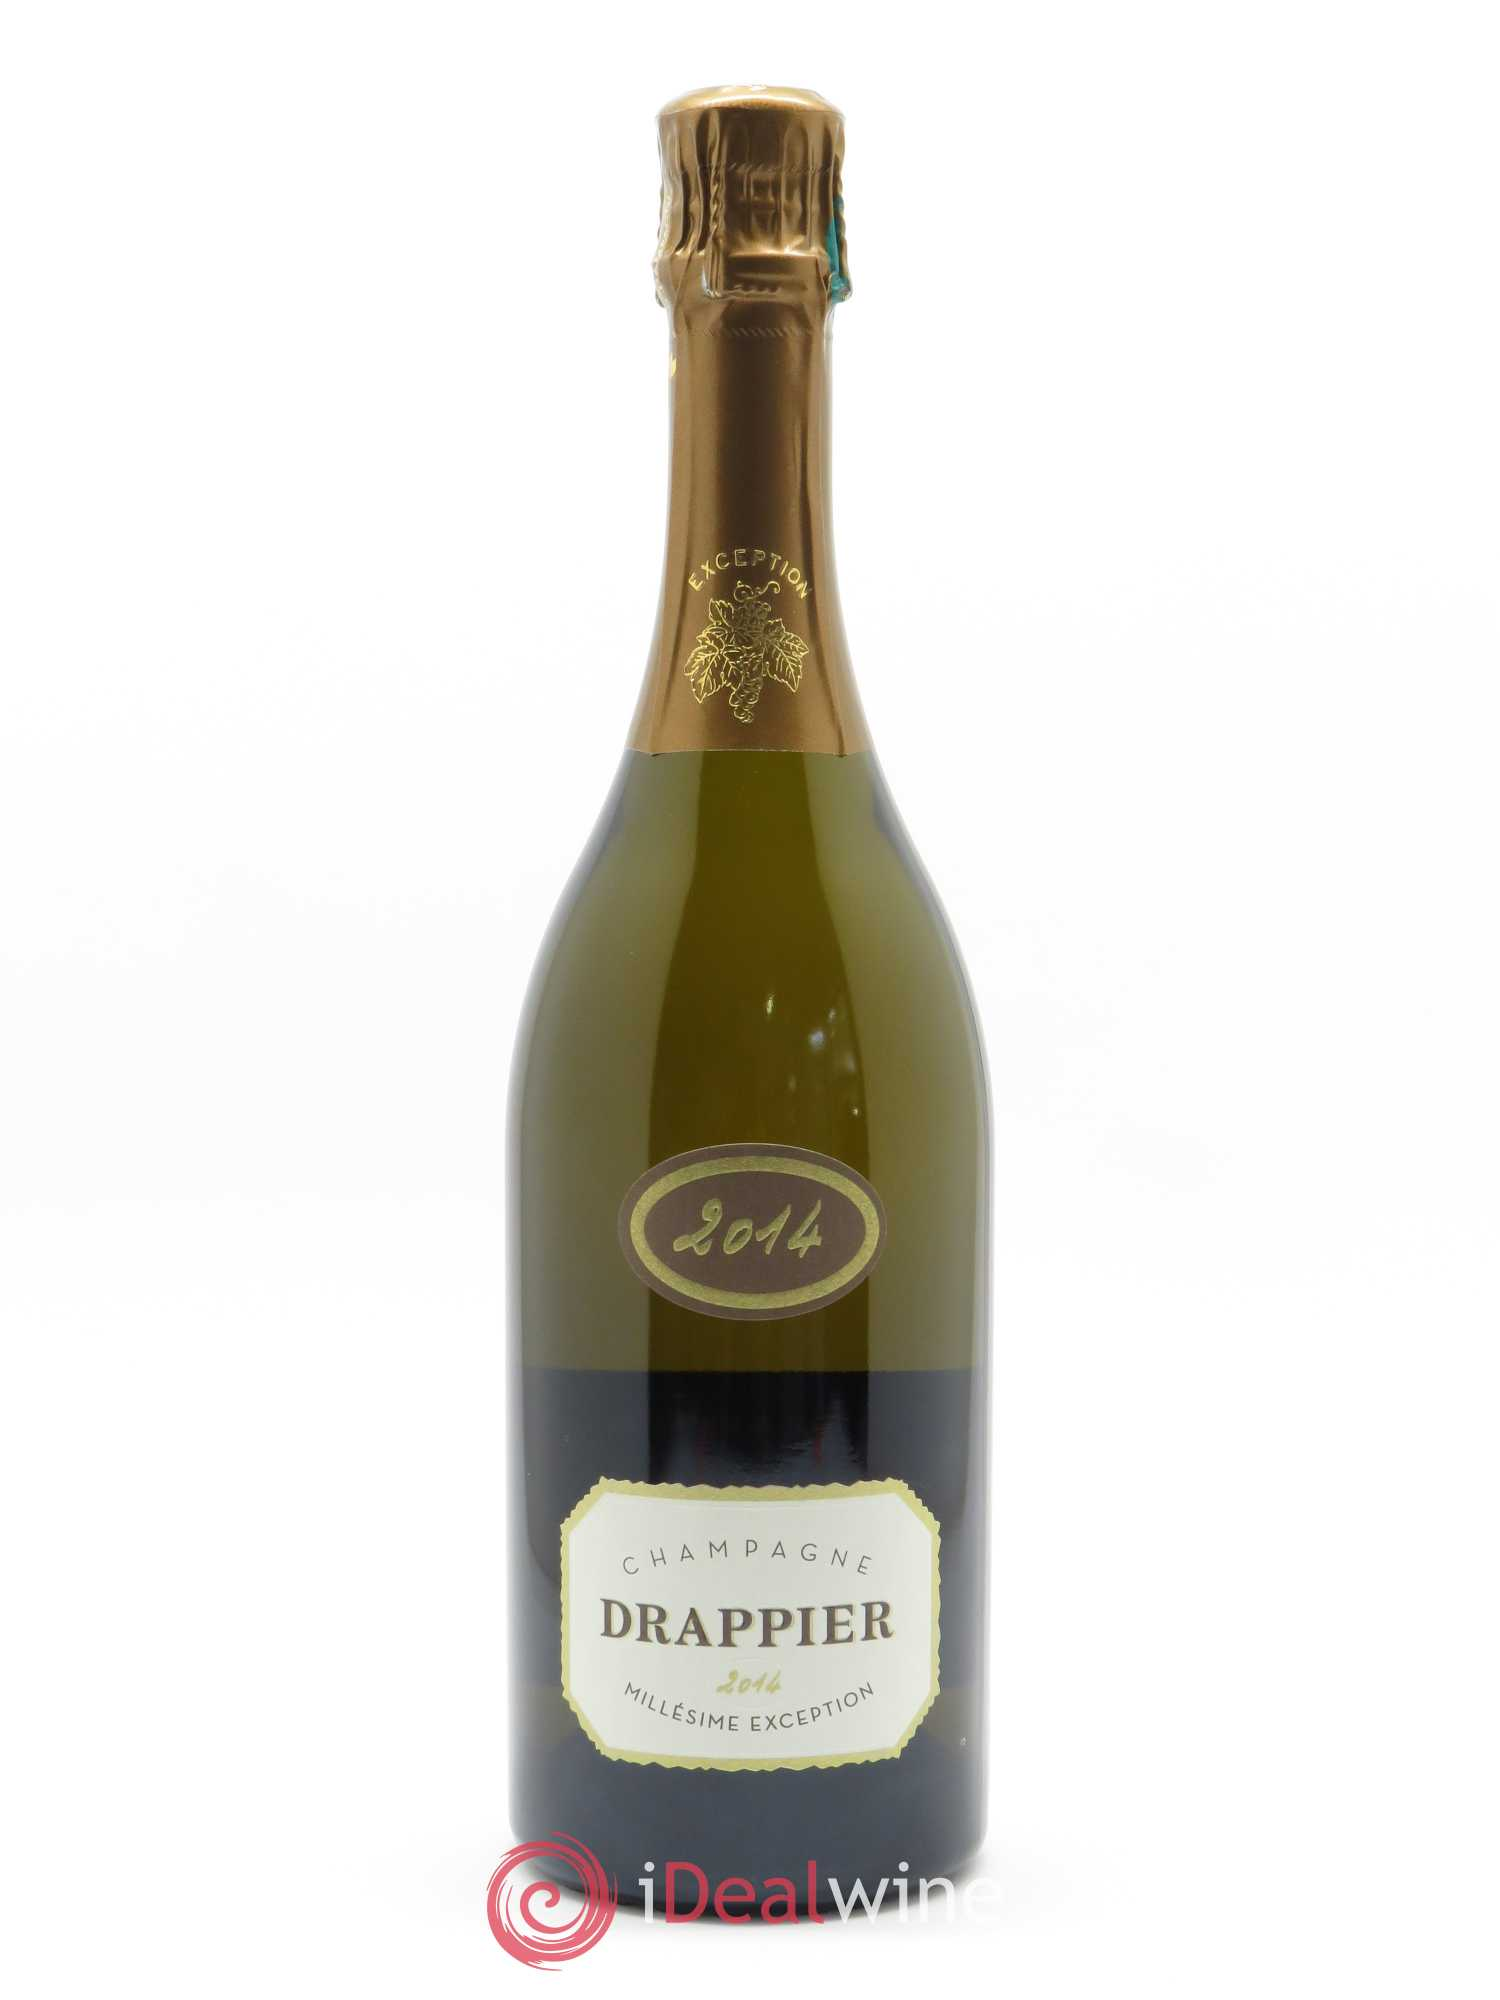 Millésime Exception Drappier  2014 - Lot of 1 Bottle